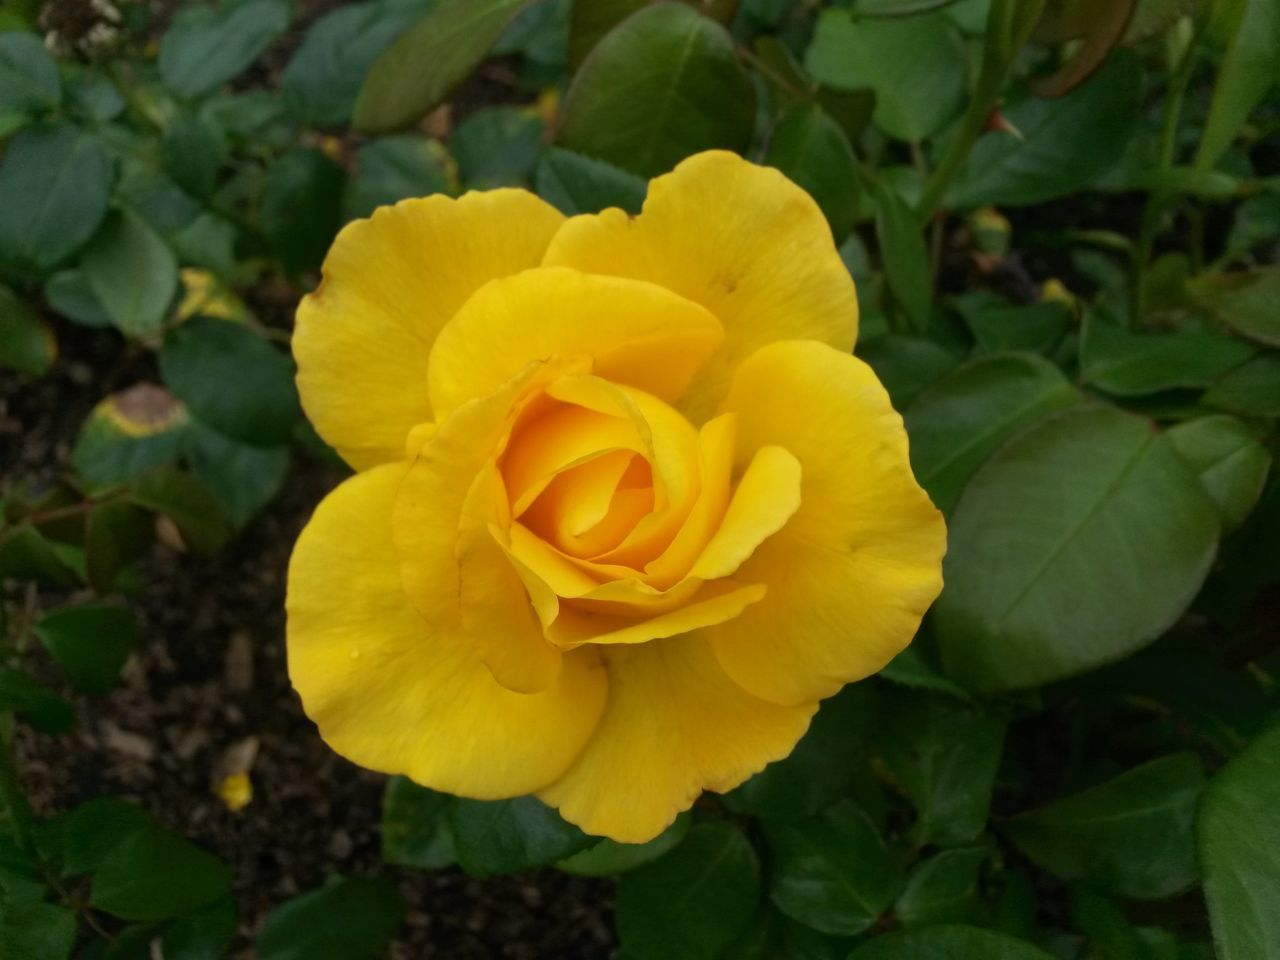 Flower Nature Close-up Beauty In Nature Yellow Flower Head Outdoors Rose - Flower Yellow Flowers Yellow Rose